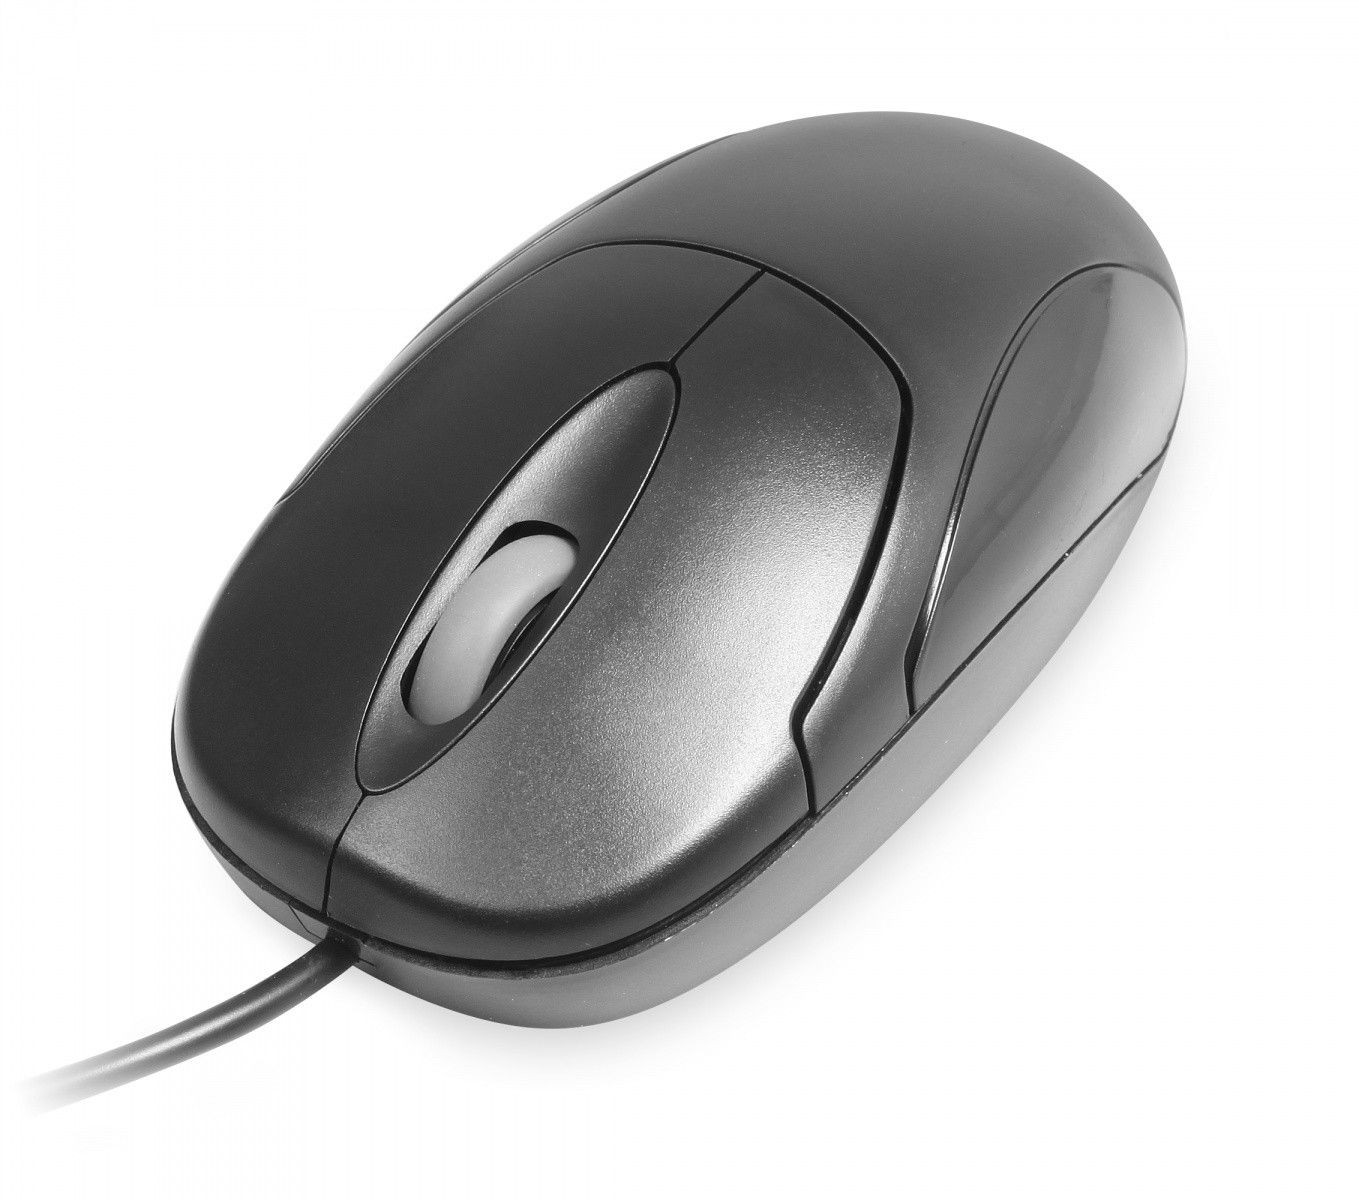 Media-Tech OPTICAL MOUSE - Standard optical mouse